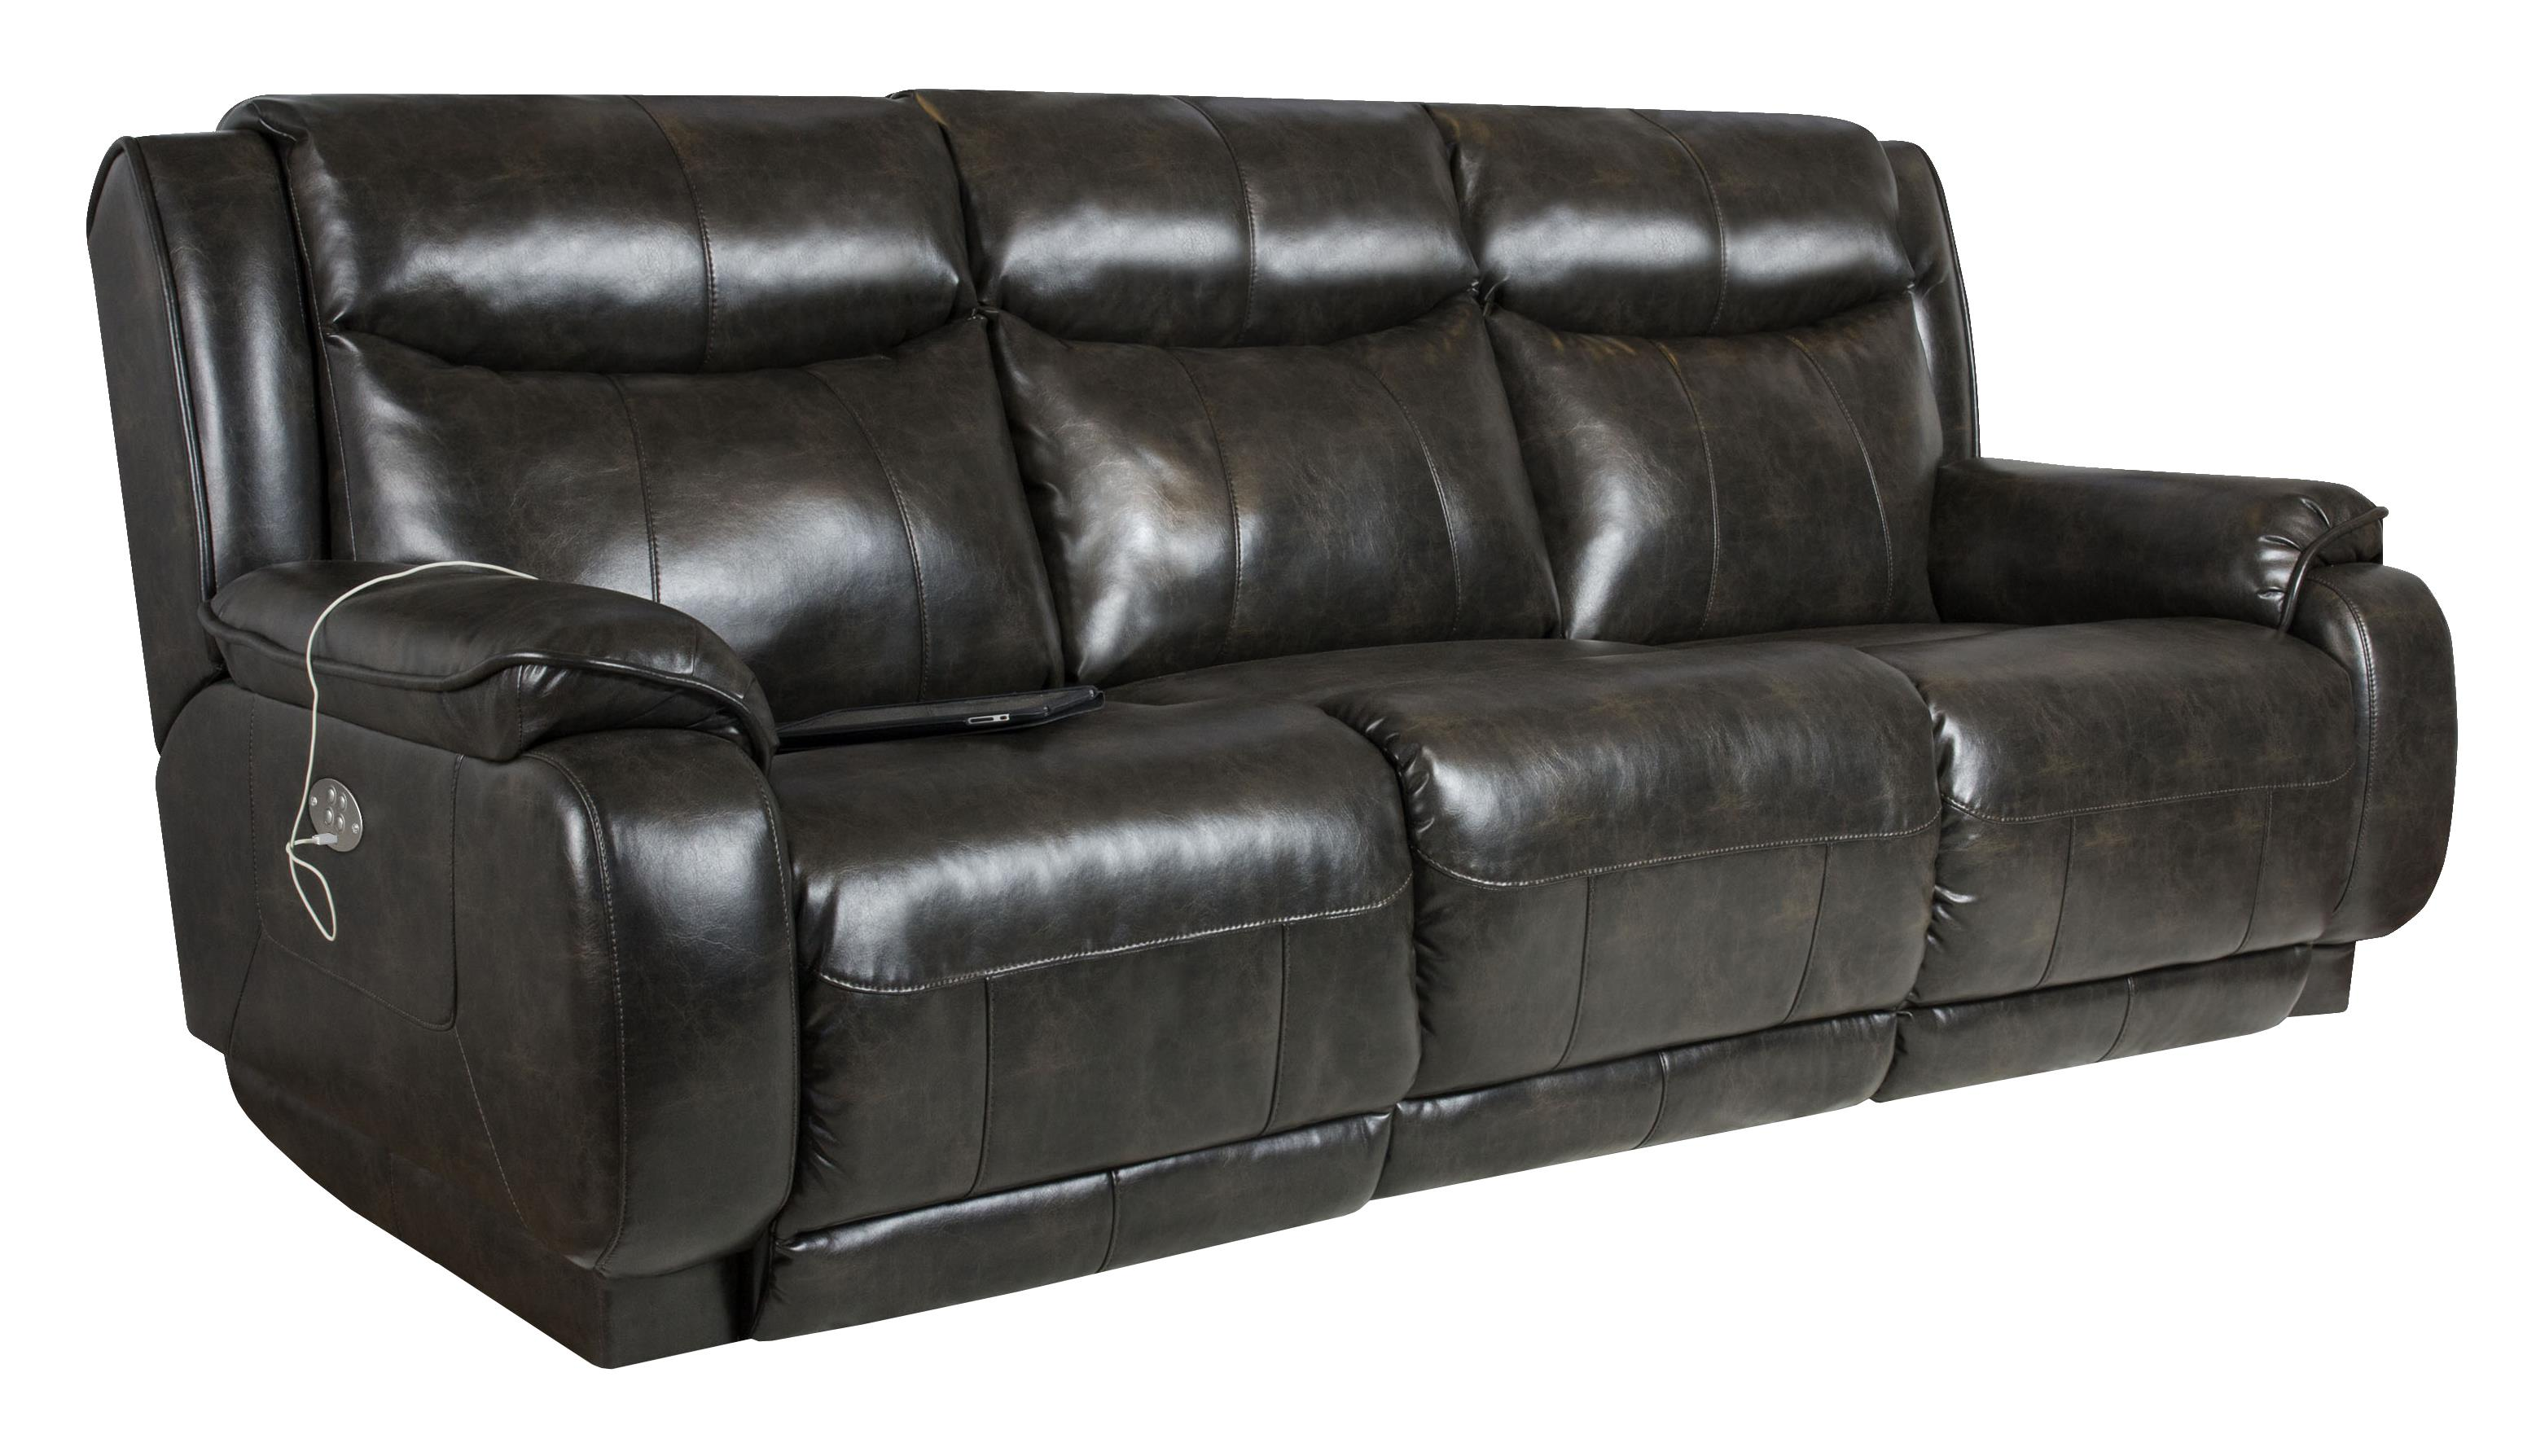 Modern Furniture Harrisburg Pa leather recliners harrisburg pa | modern leather furniture and dogs